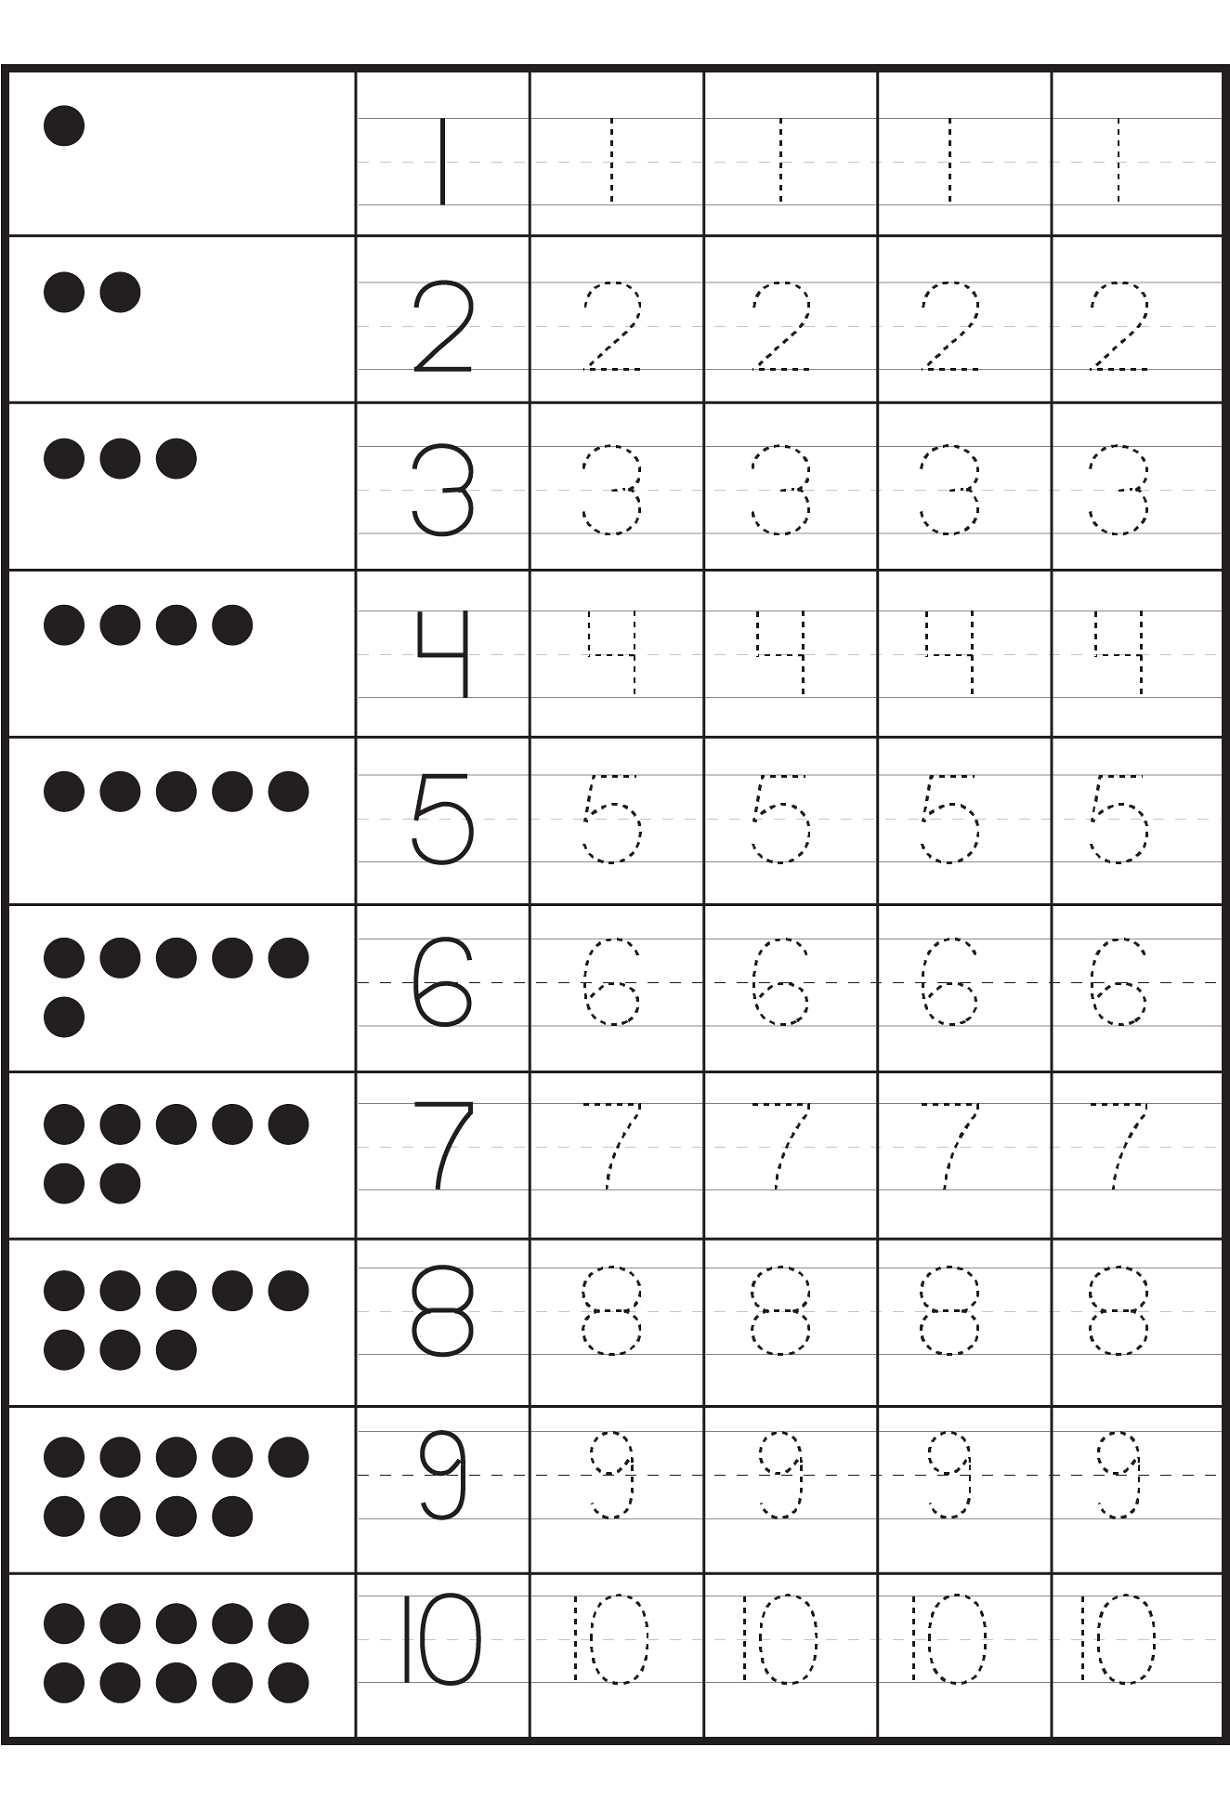 Tracing Numbers 1-10 Worksheets | Preschool worksheets ...